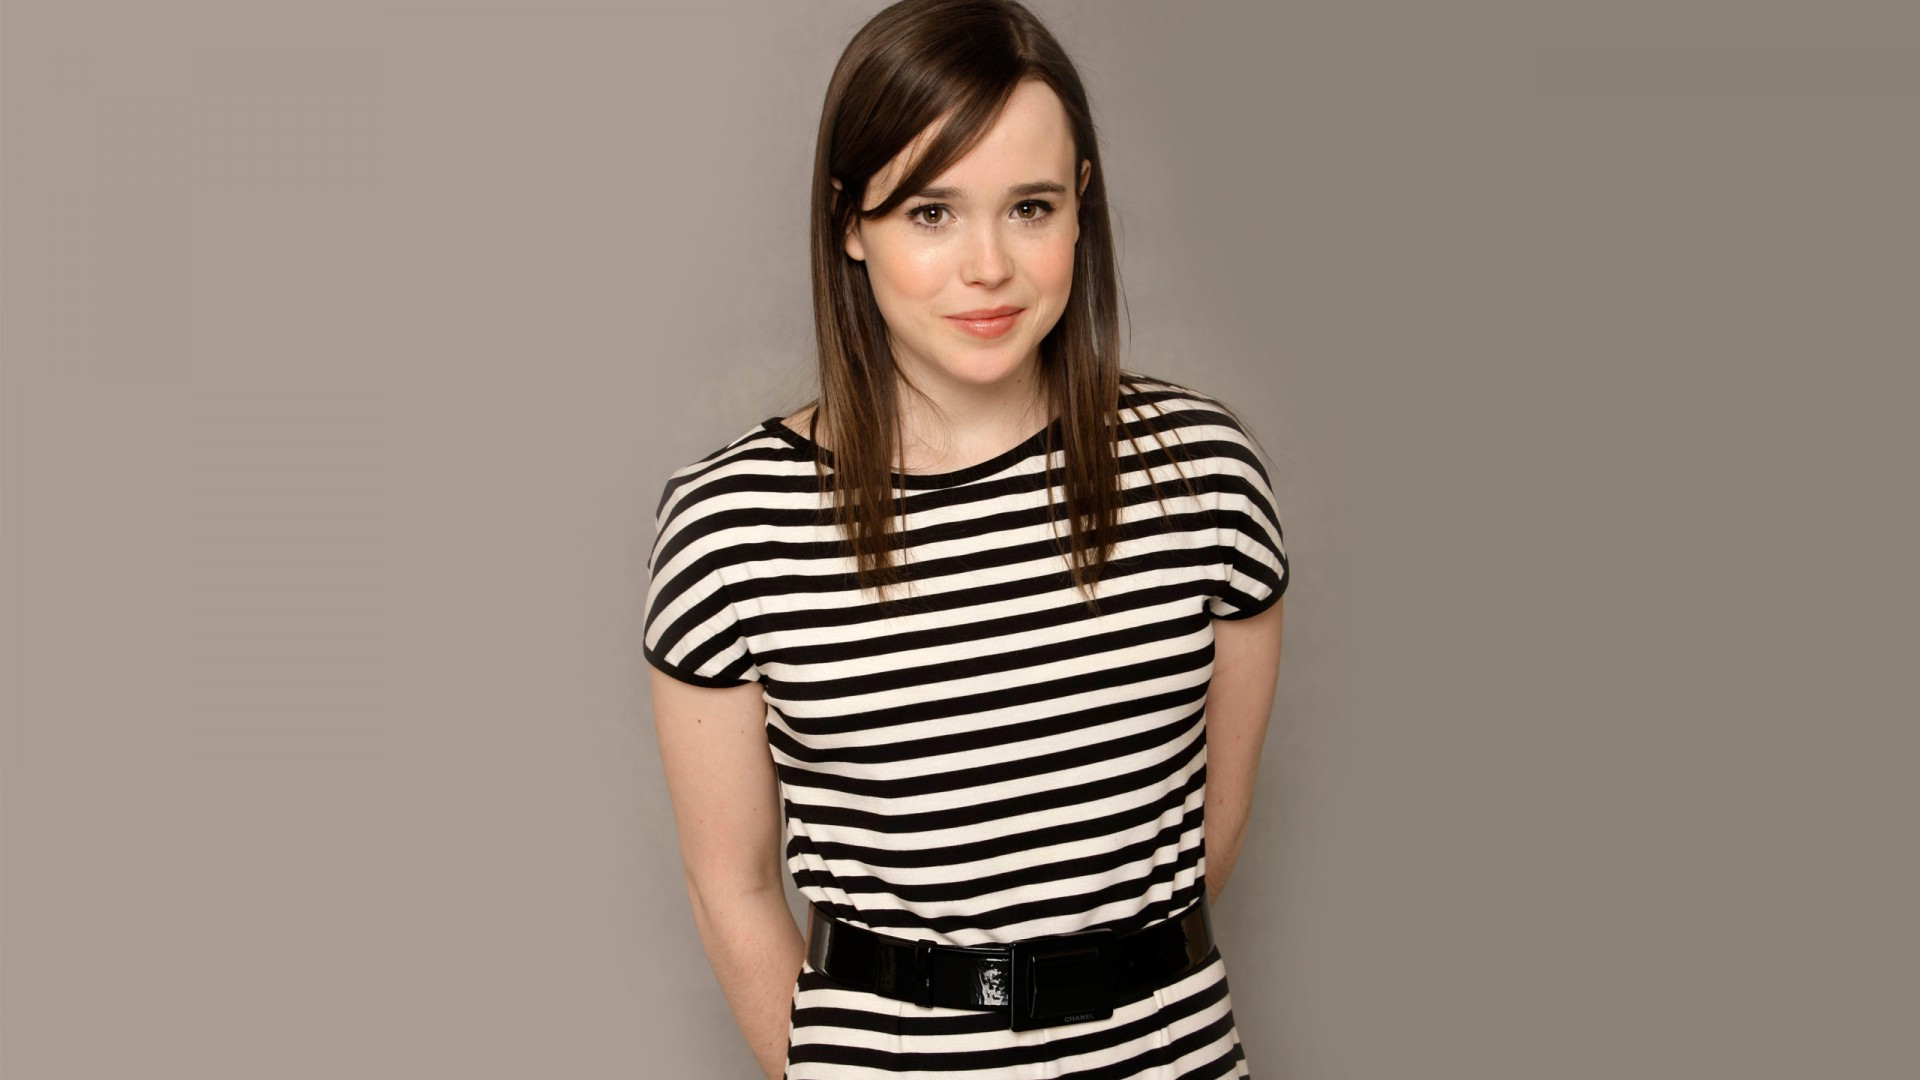 ellen page wallpapers, pictures, images